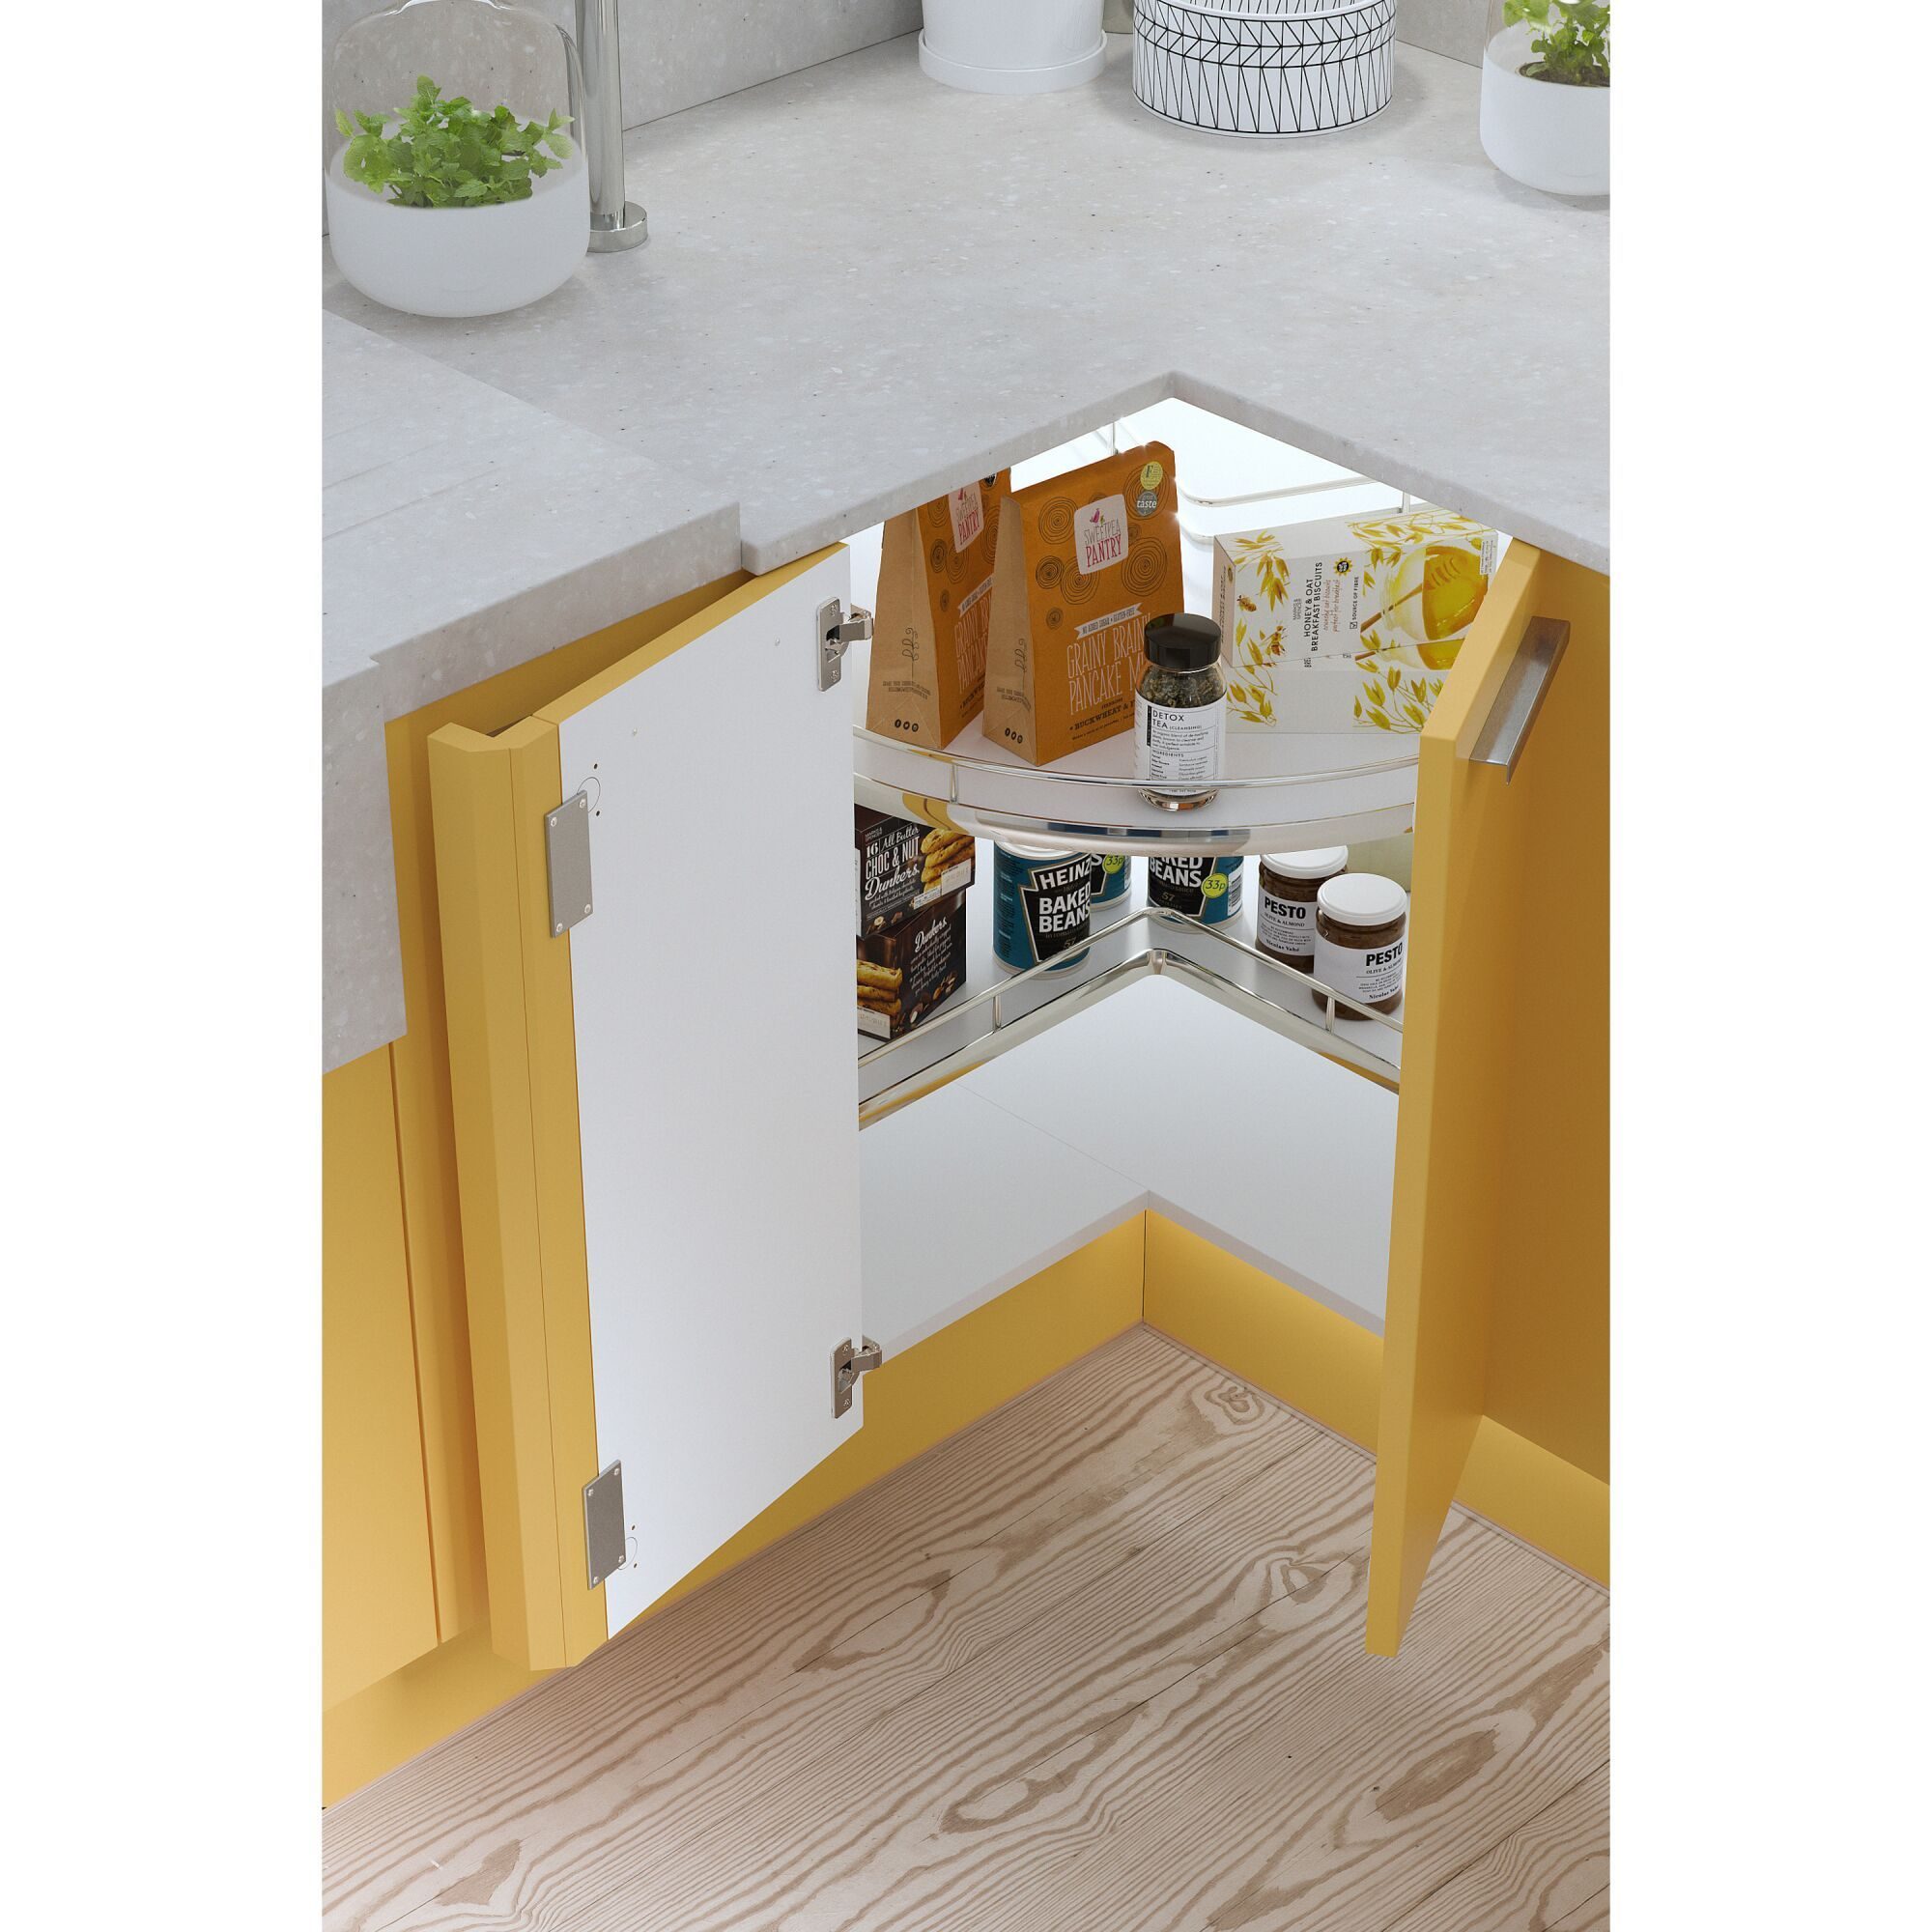 Contour Kitchen in Bumblebee Matt